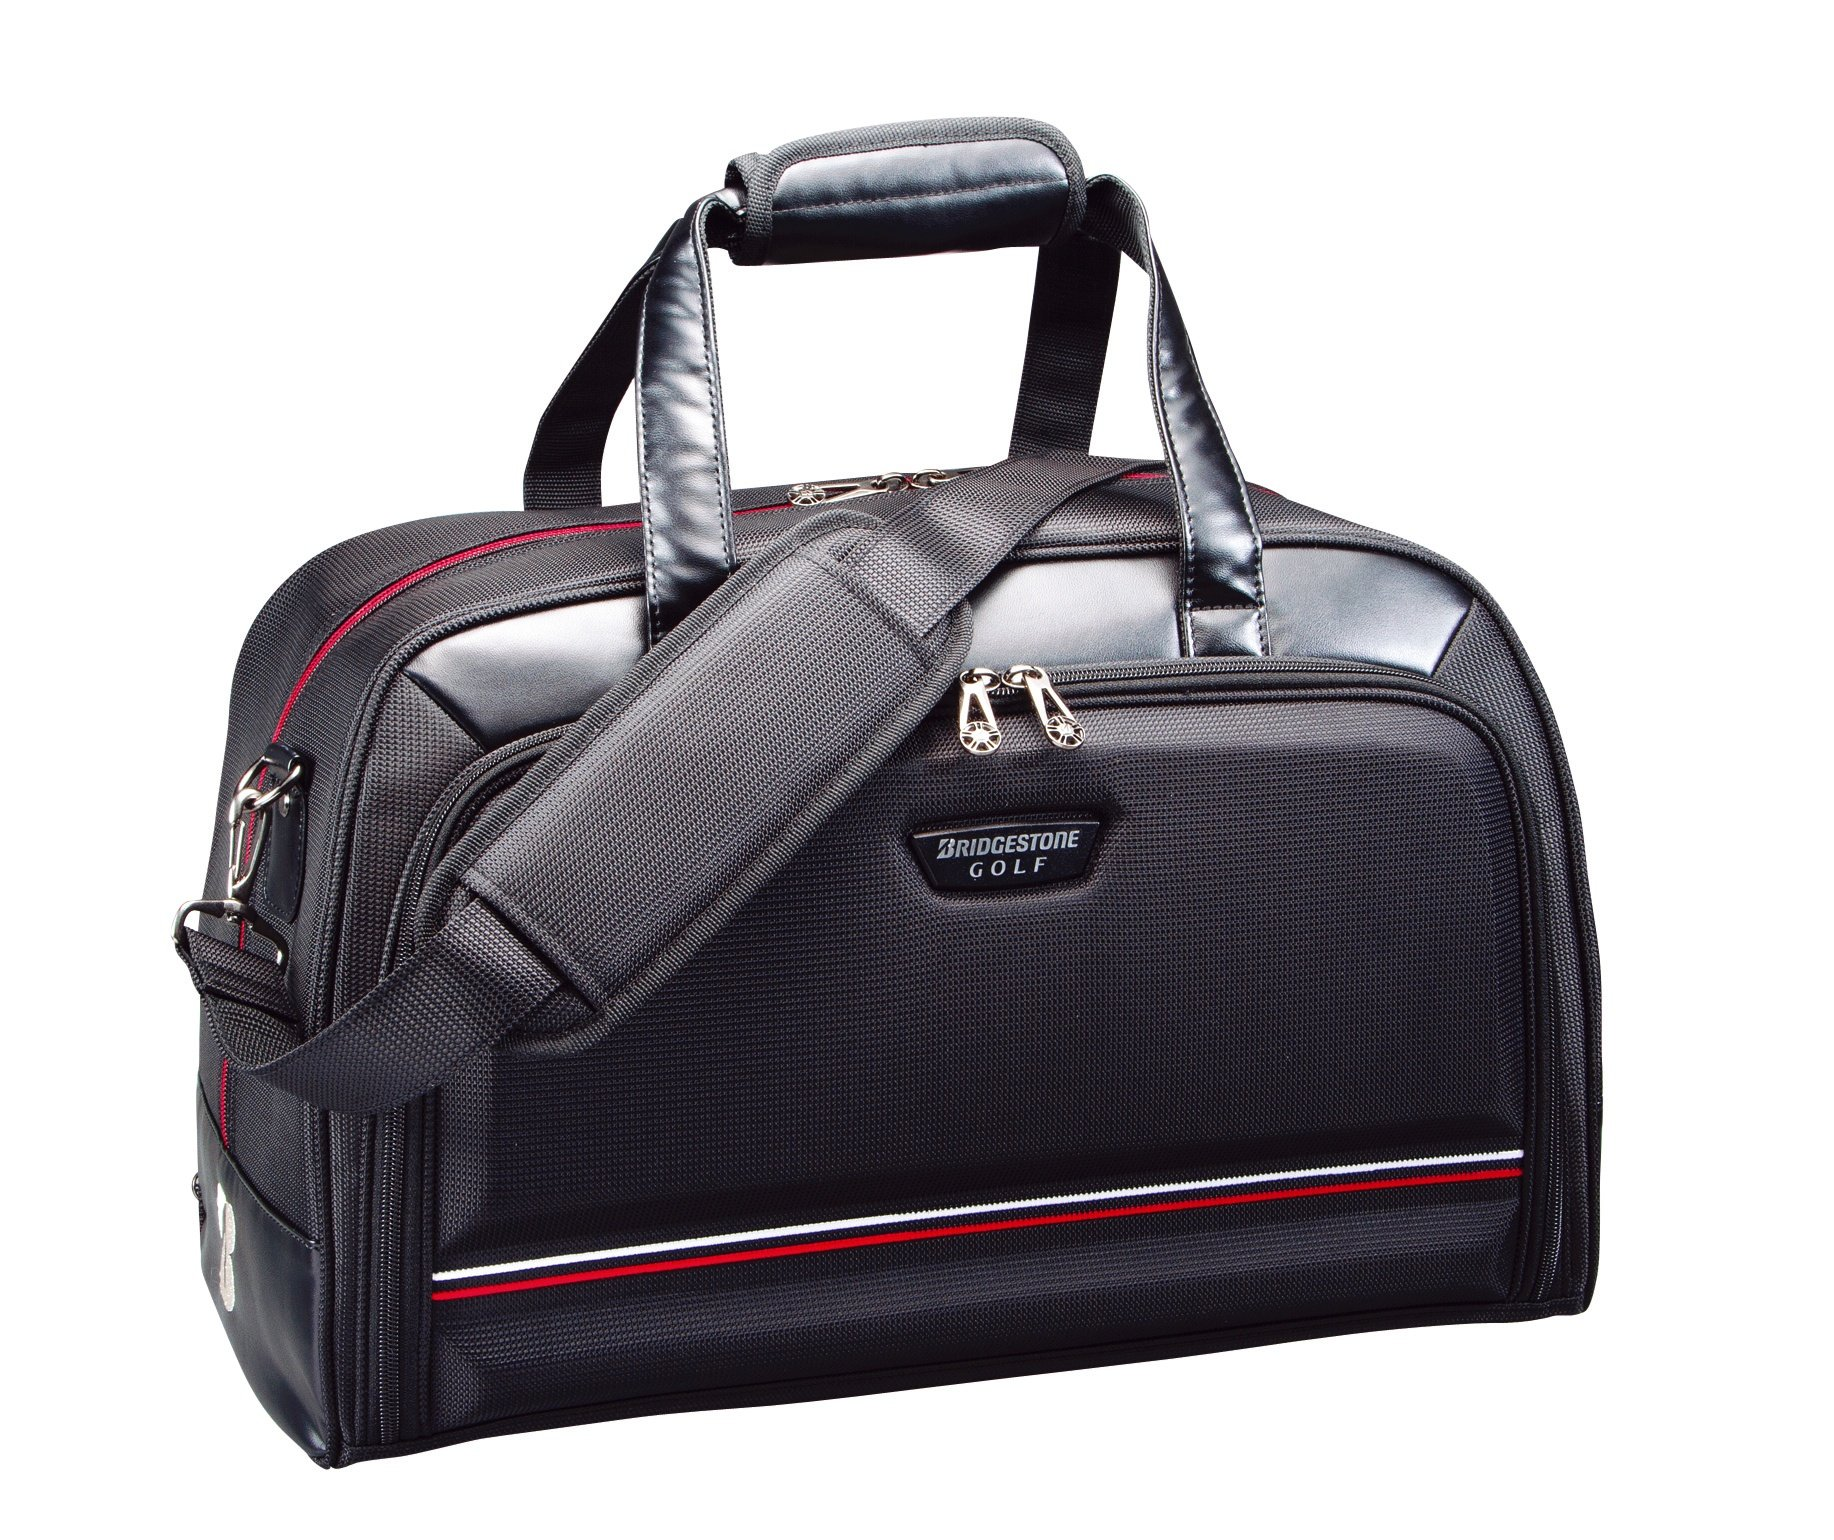 BRIDGESTONE GOLF Boston bag BBG 600